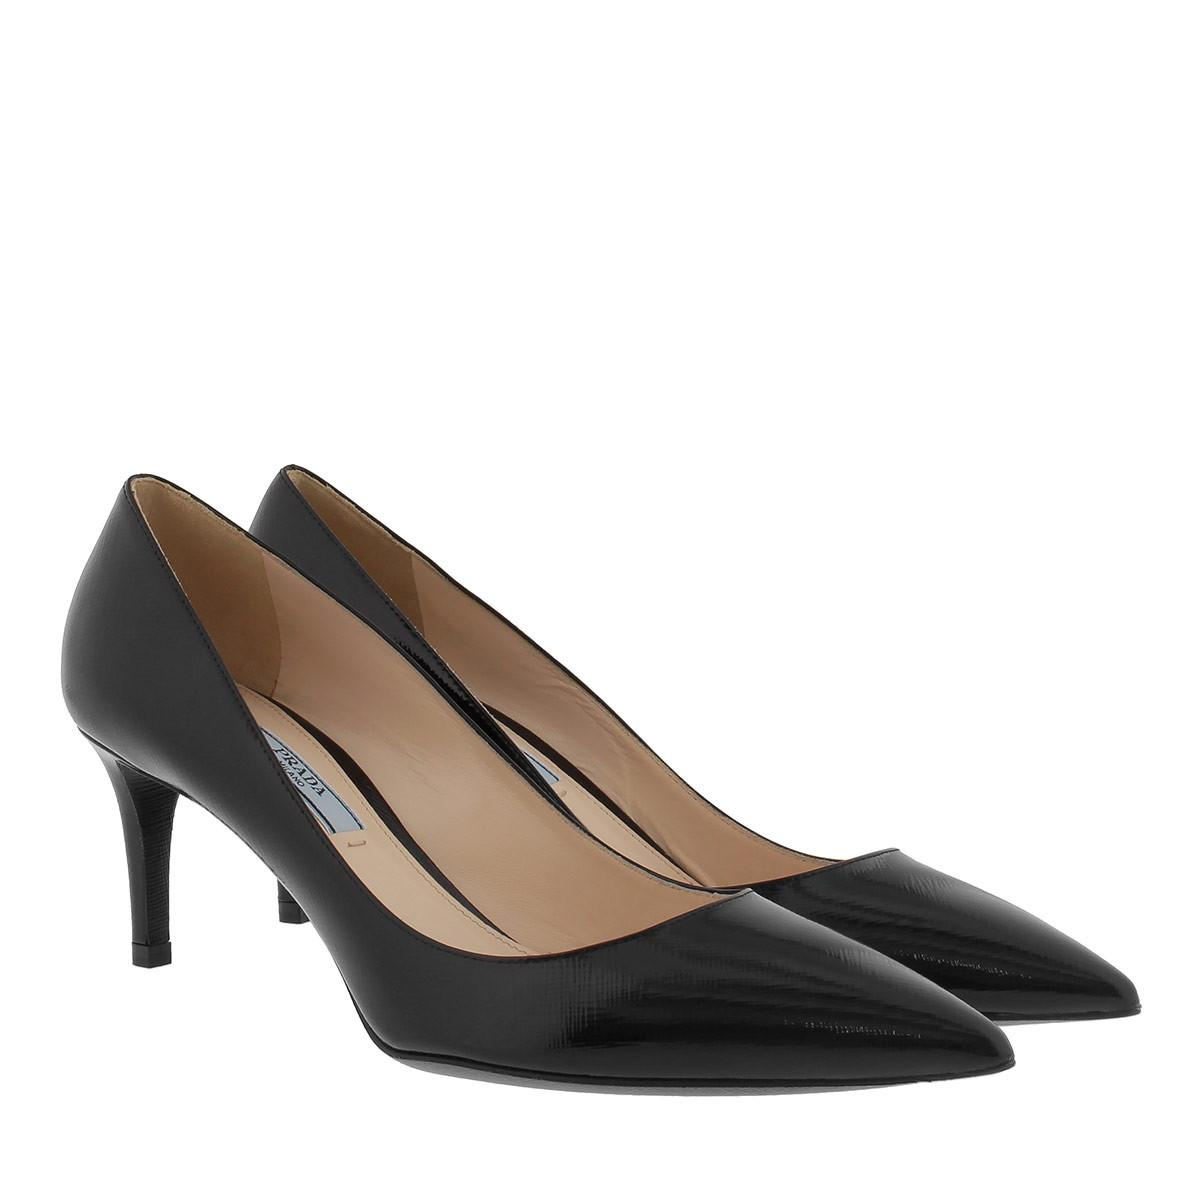 Pumps - Calzature Donna Vitello Lux Pumps 90 Nero - black - Pumps for ladies Prada FMdgE